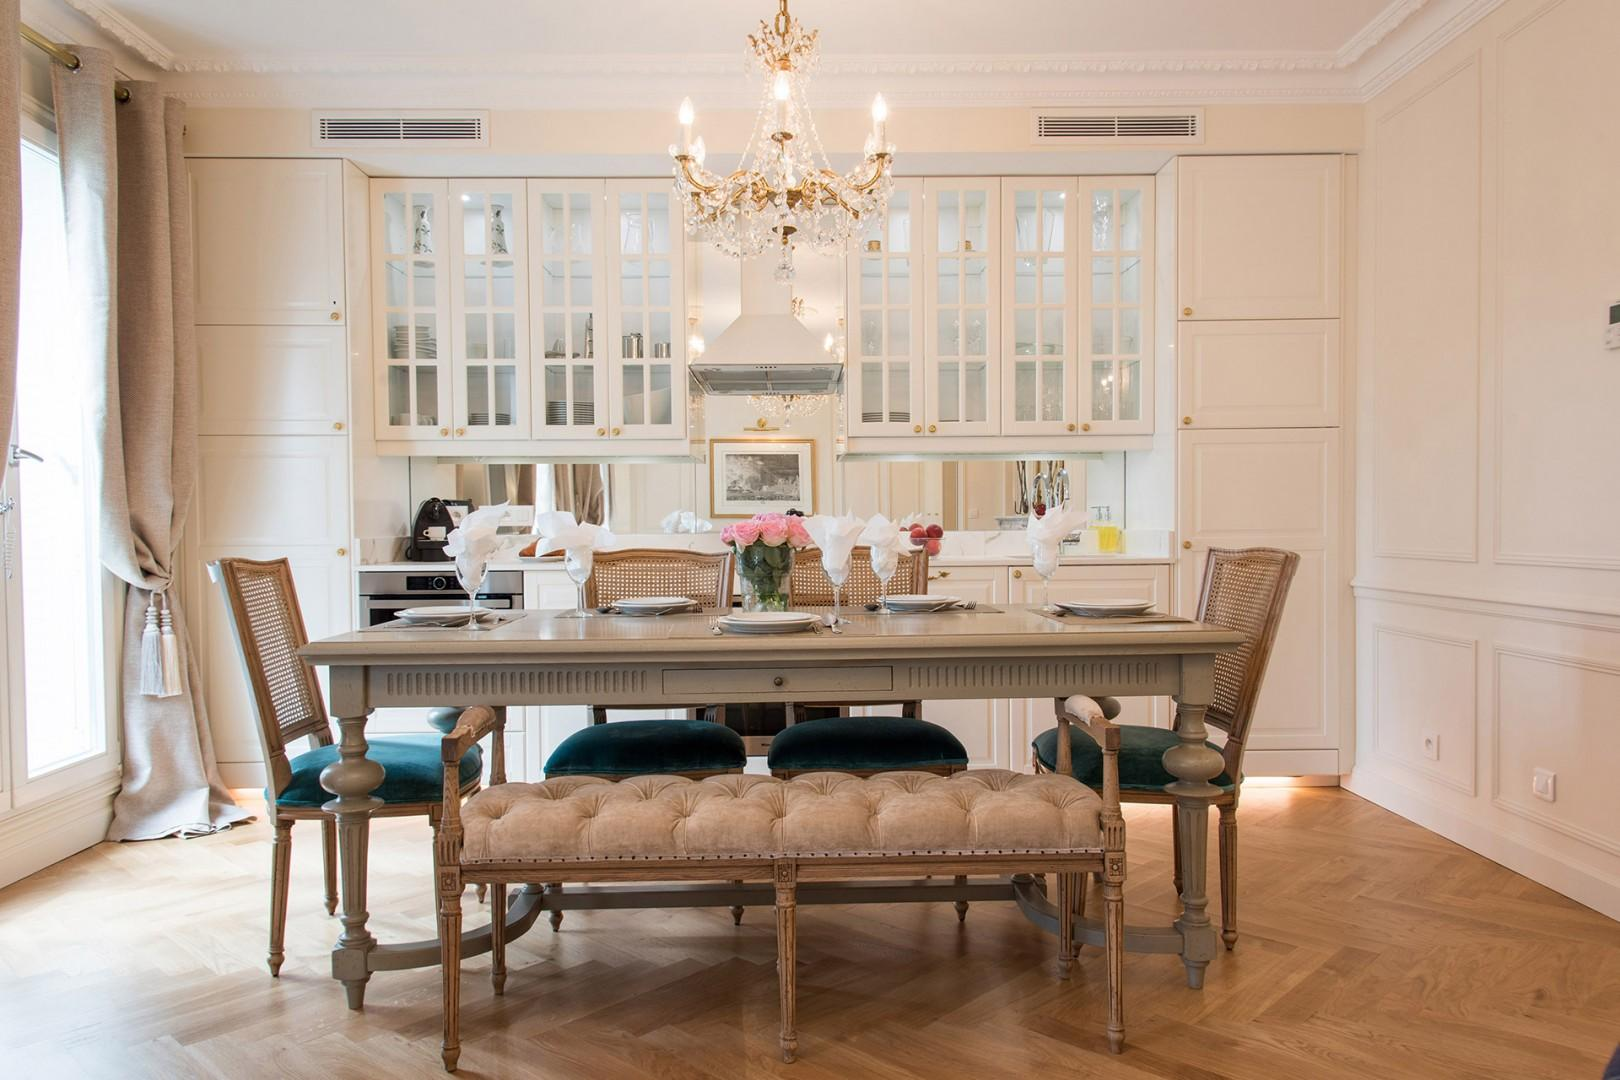 The large dining table comfortably seats eight guests.